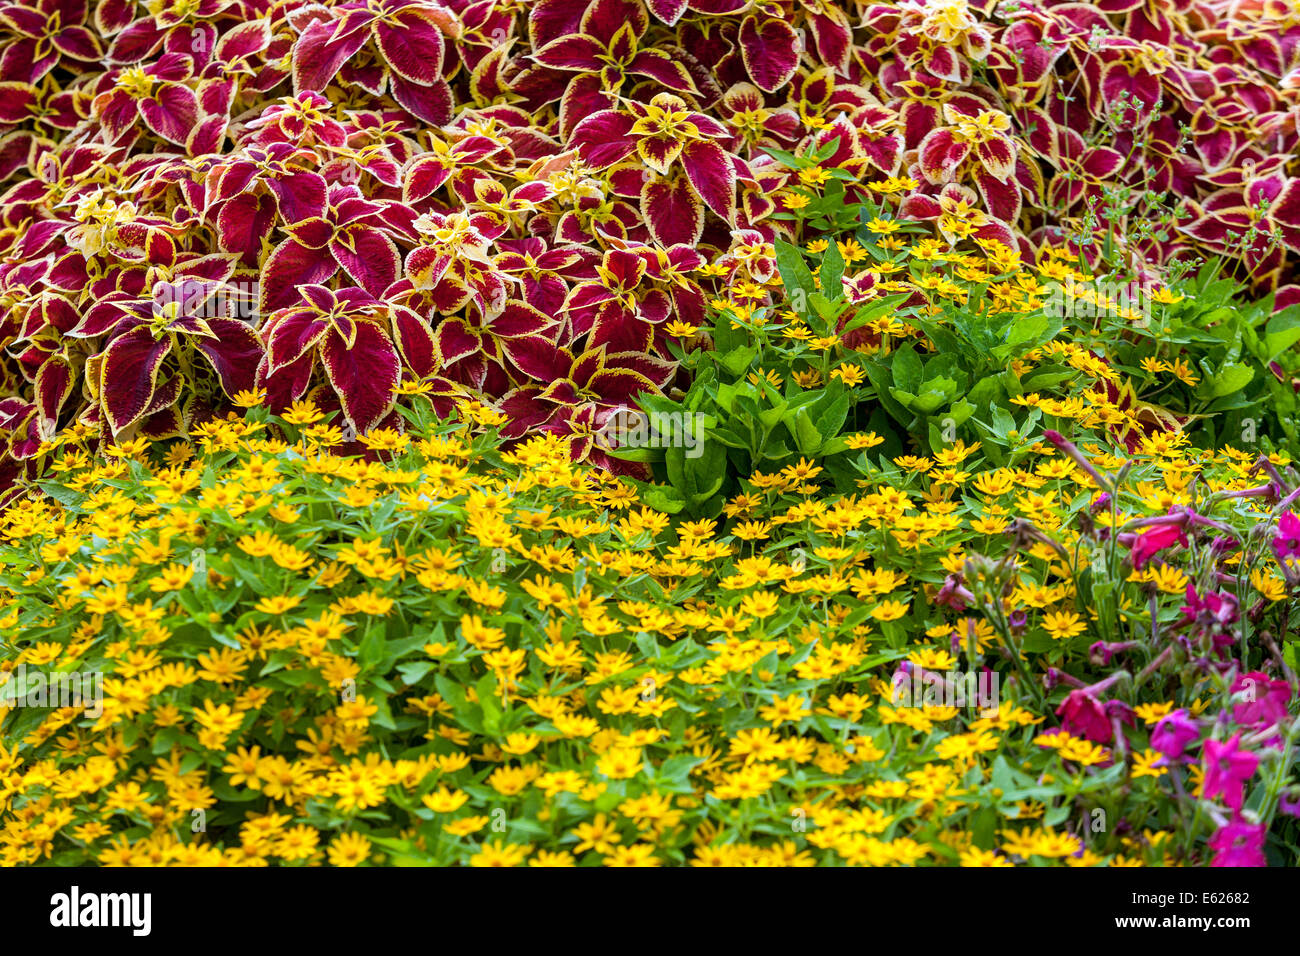 Colorful flower bed of annual flowers coleus blumel wizard stock colorful flower bed of annual flowers coleus blumel wizard scarlet melampodium izmirmasajfo Image collections